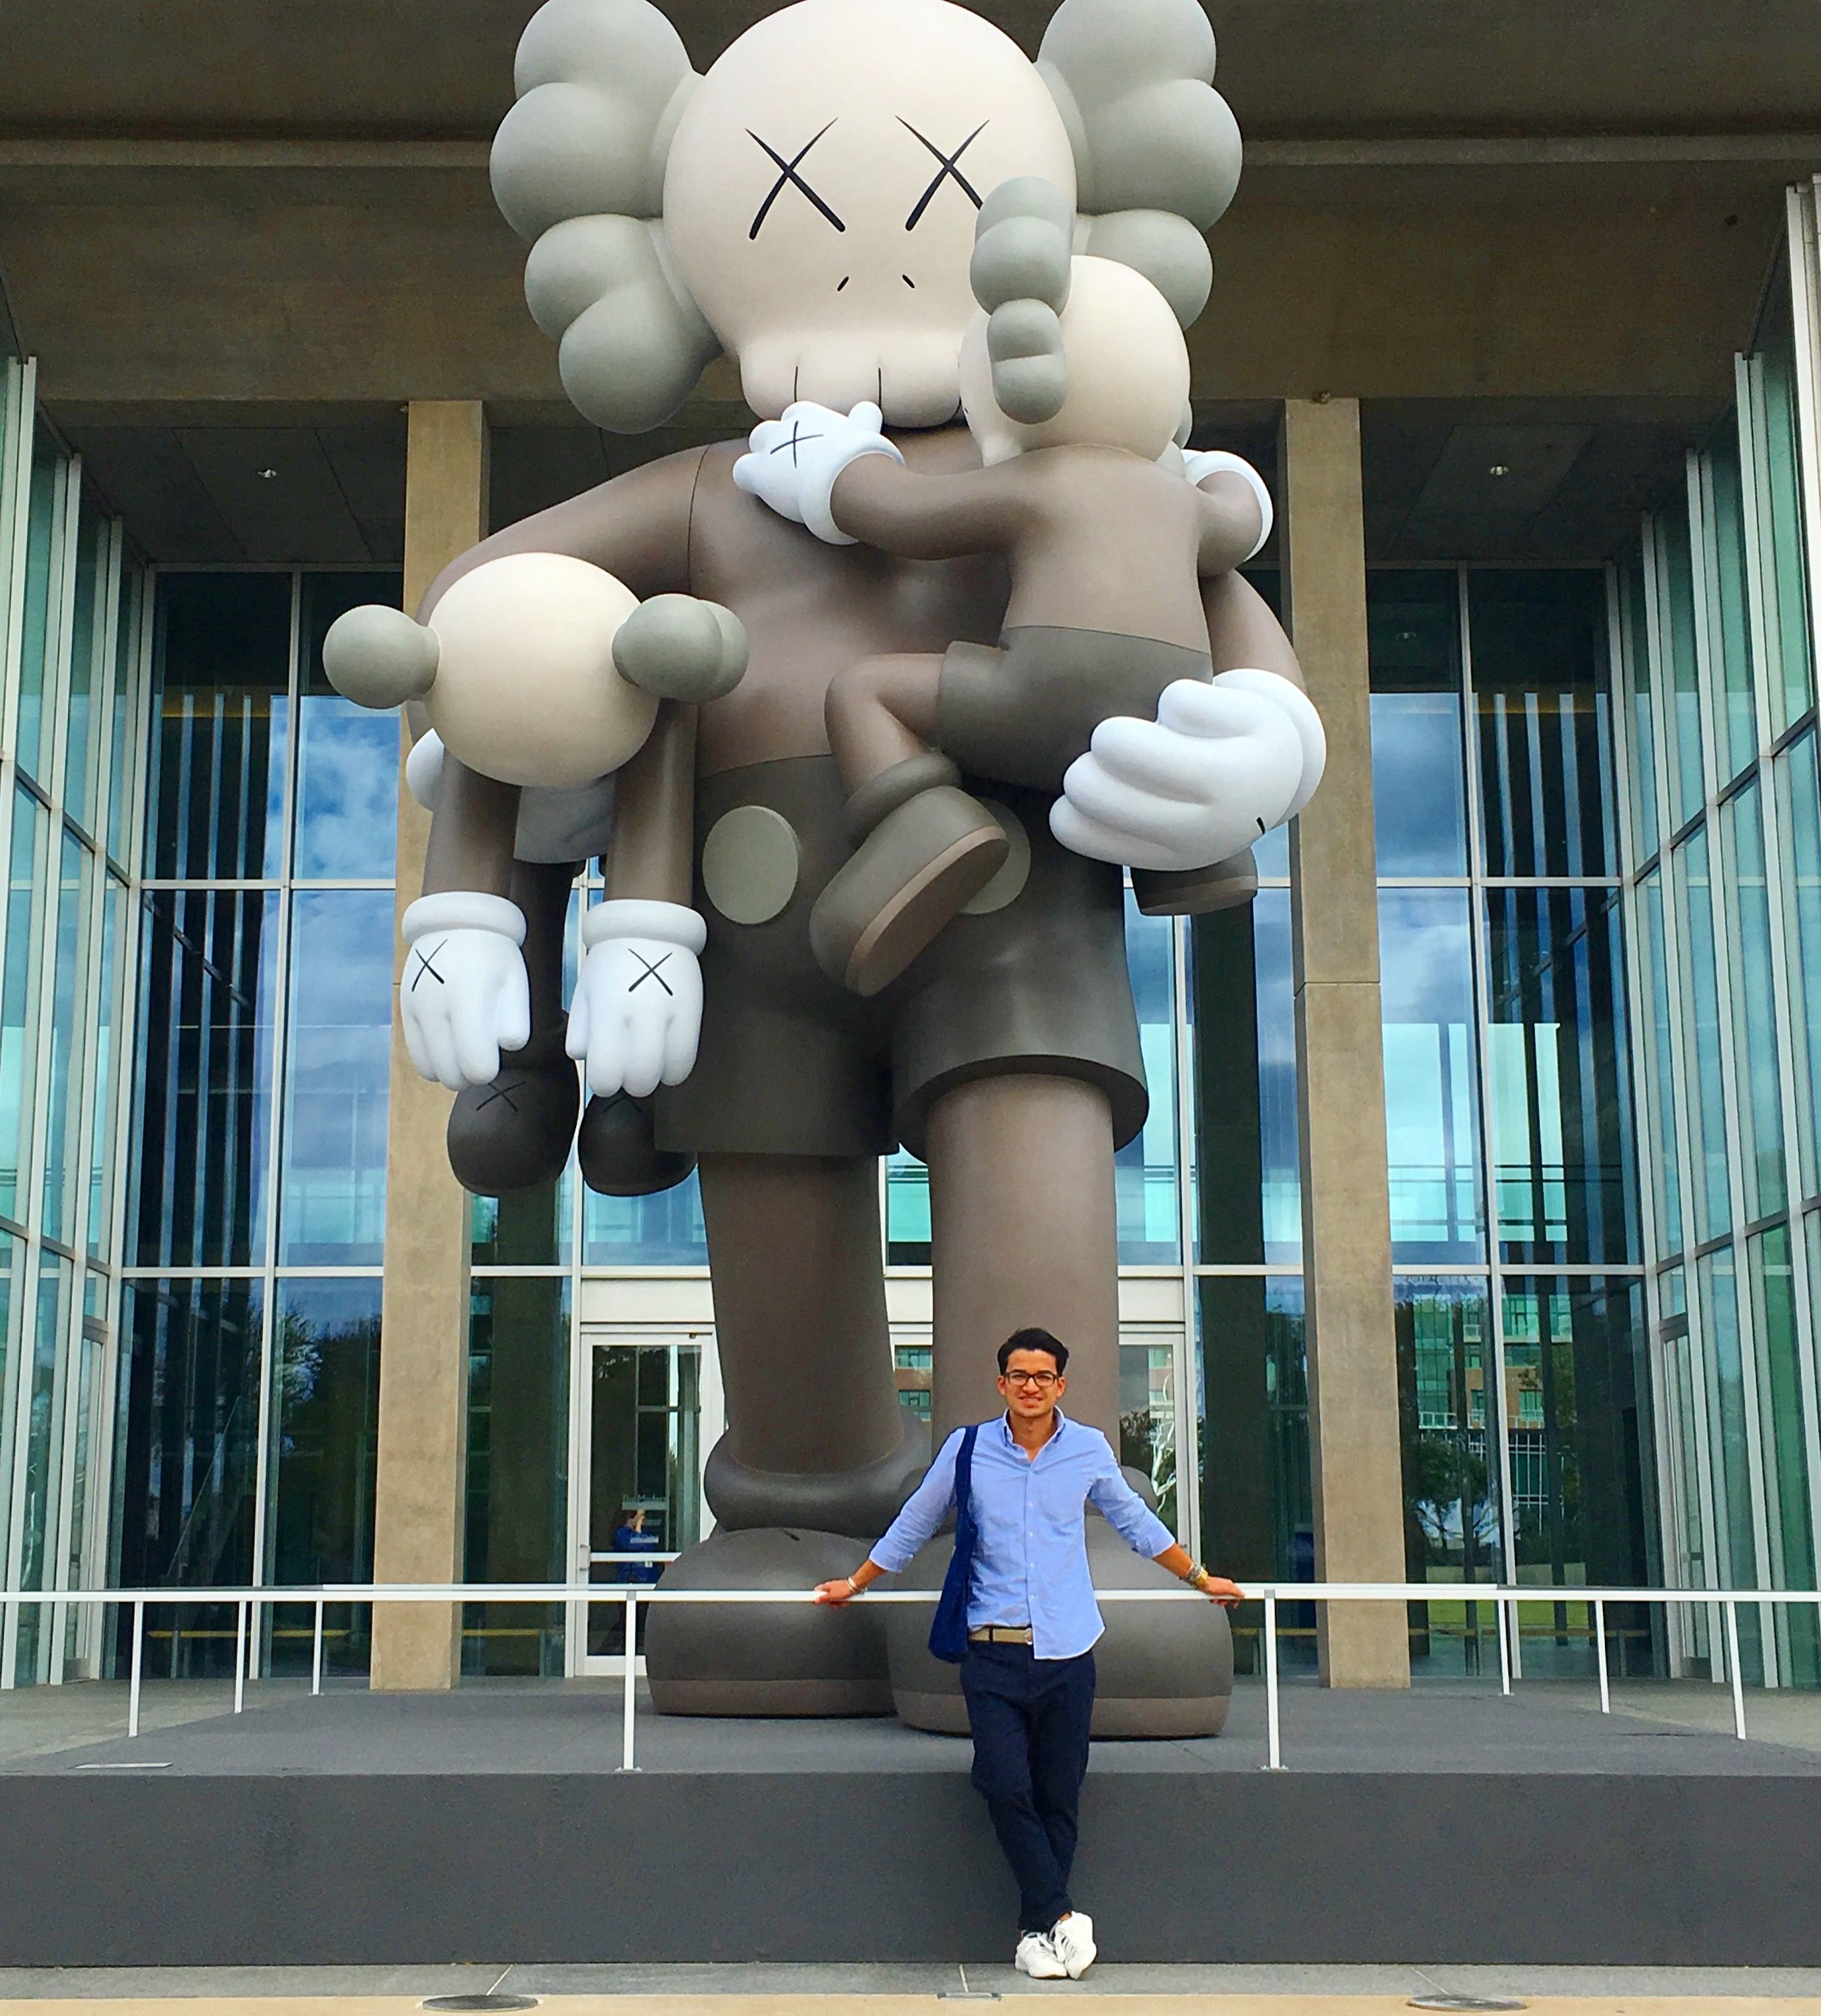 Kaws exhibition at The Modern in Fort Worth